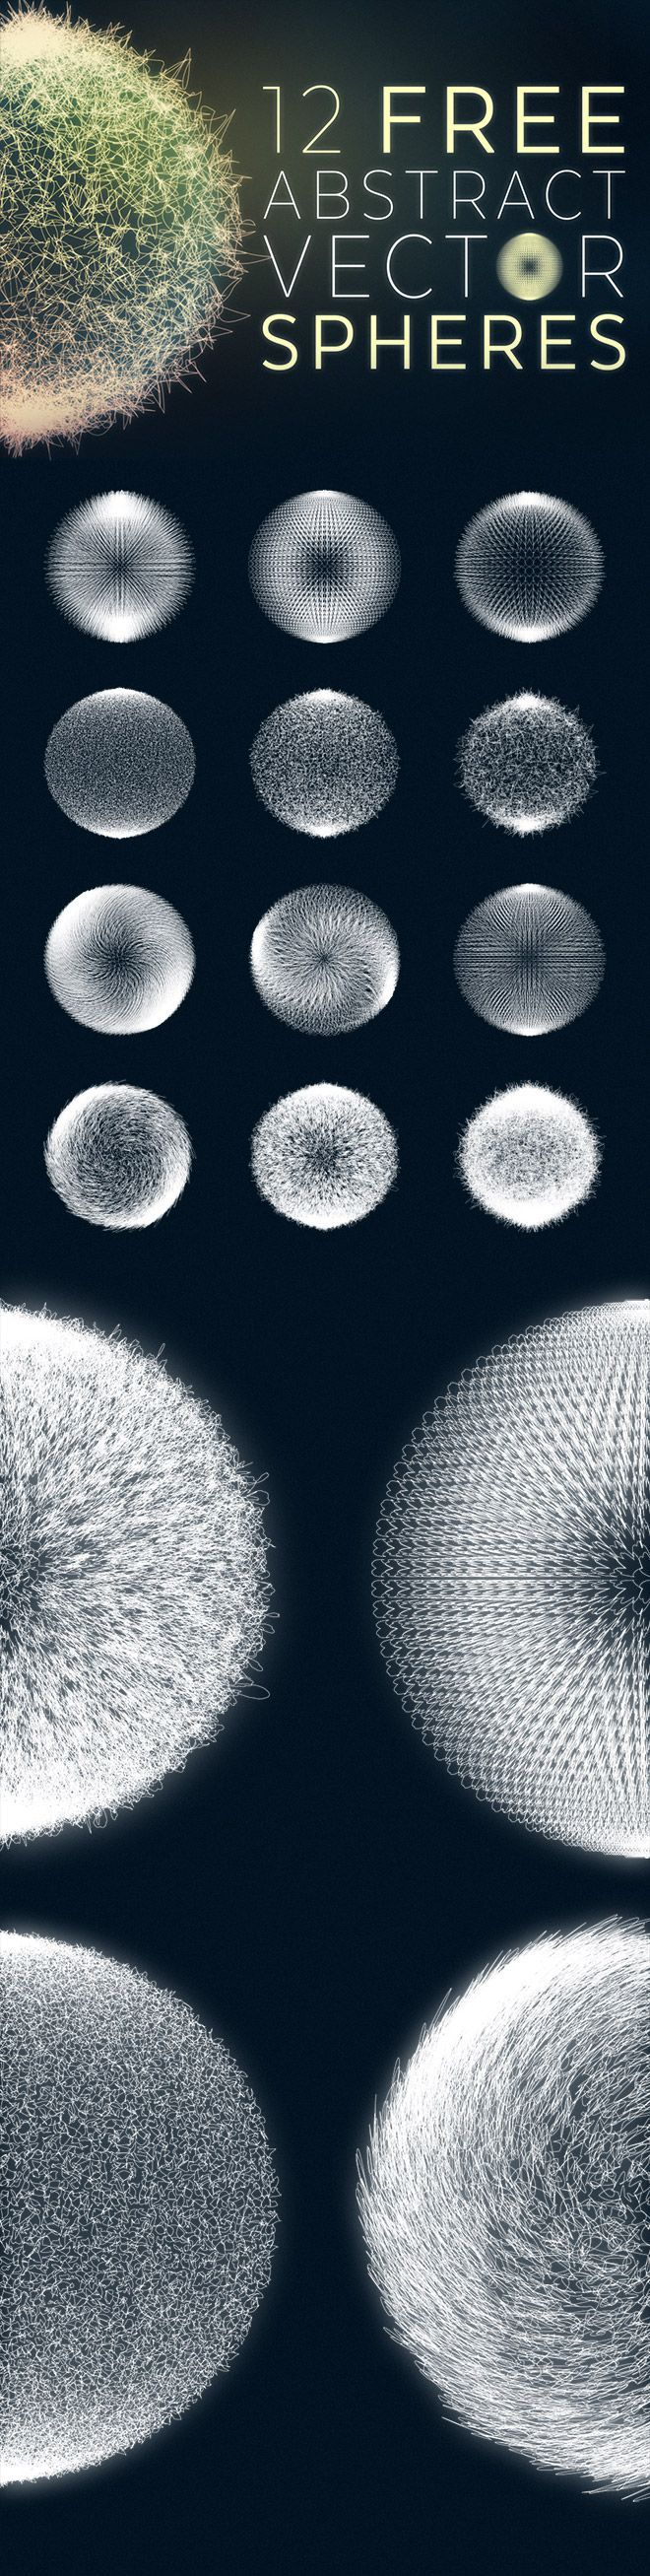 12 Free Abstract Sphere Graphics in Vector Format | Blog.SpoonGraphics by Chris Spooner